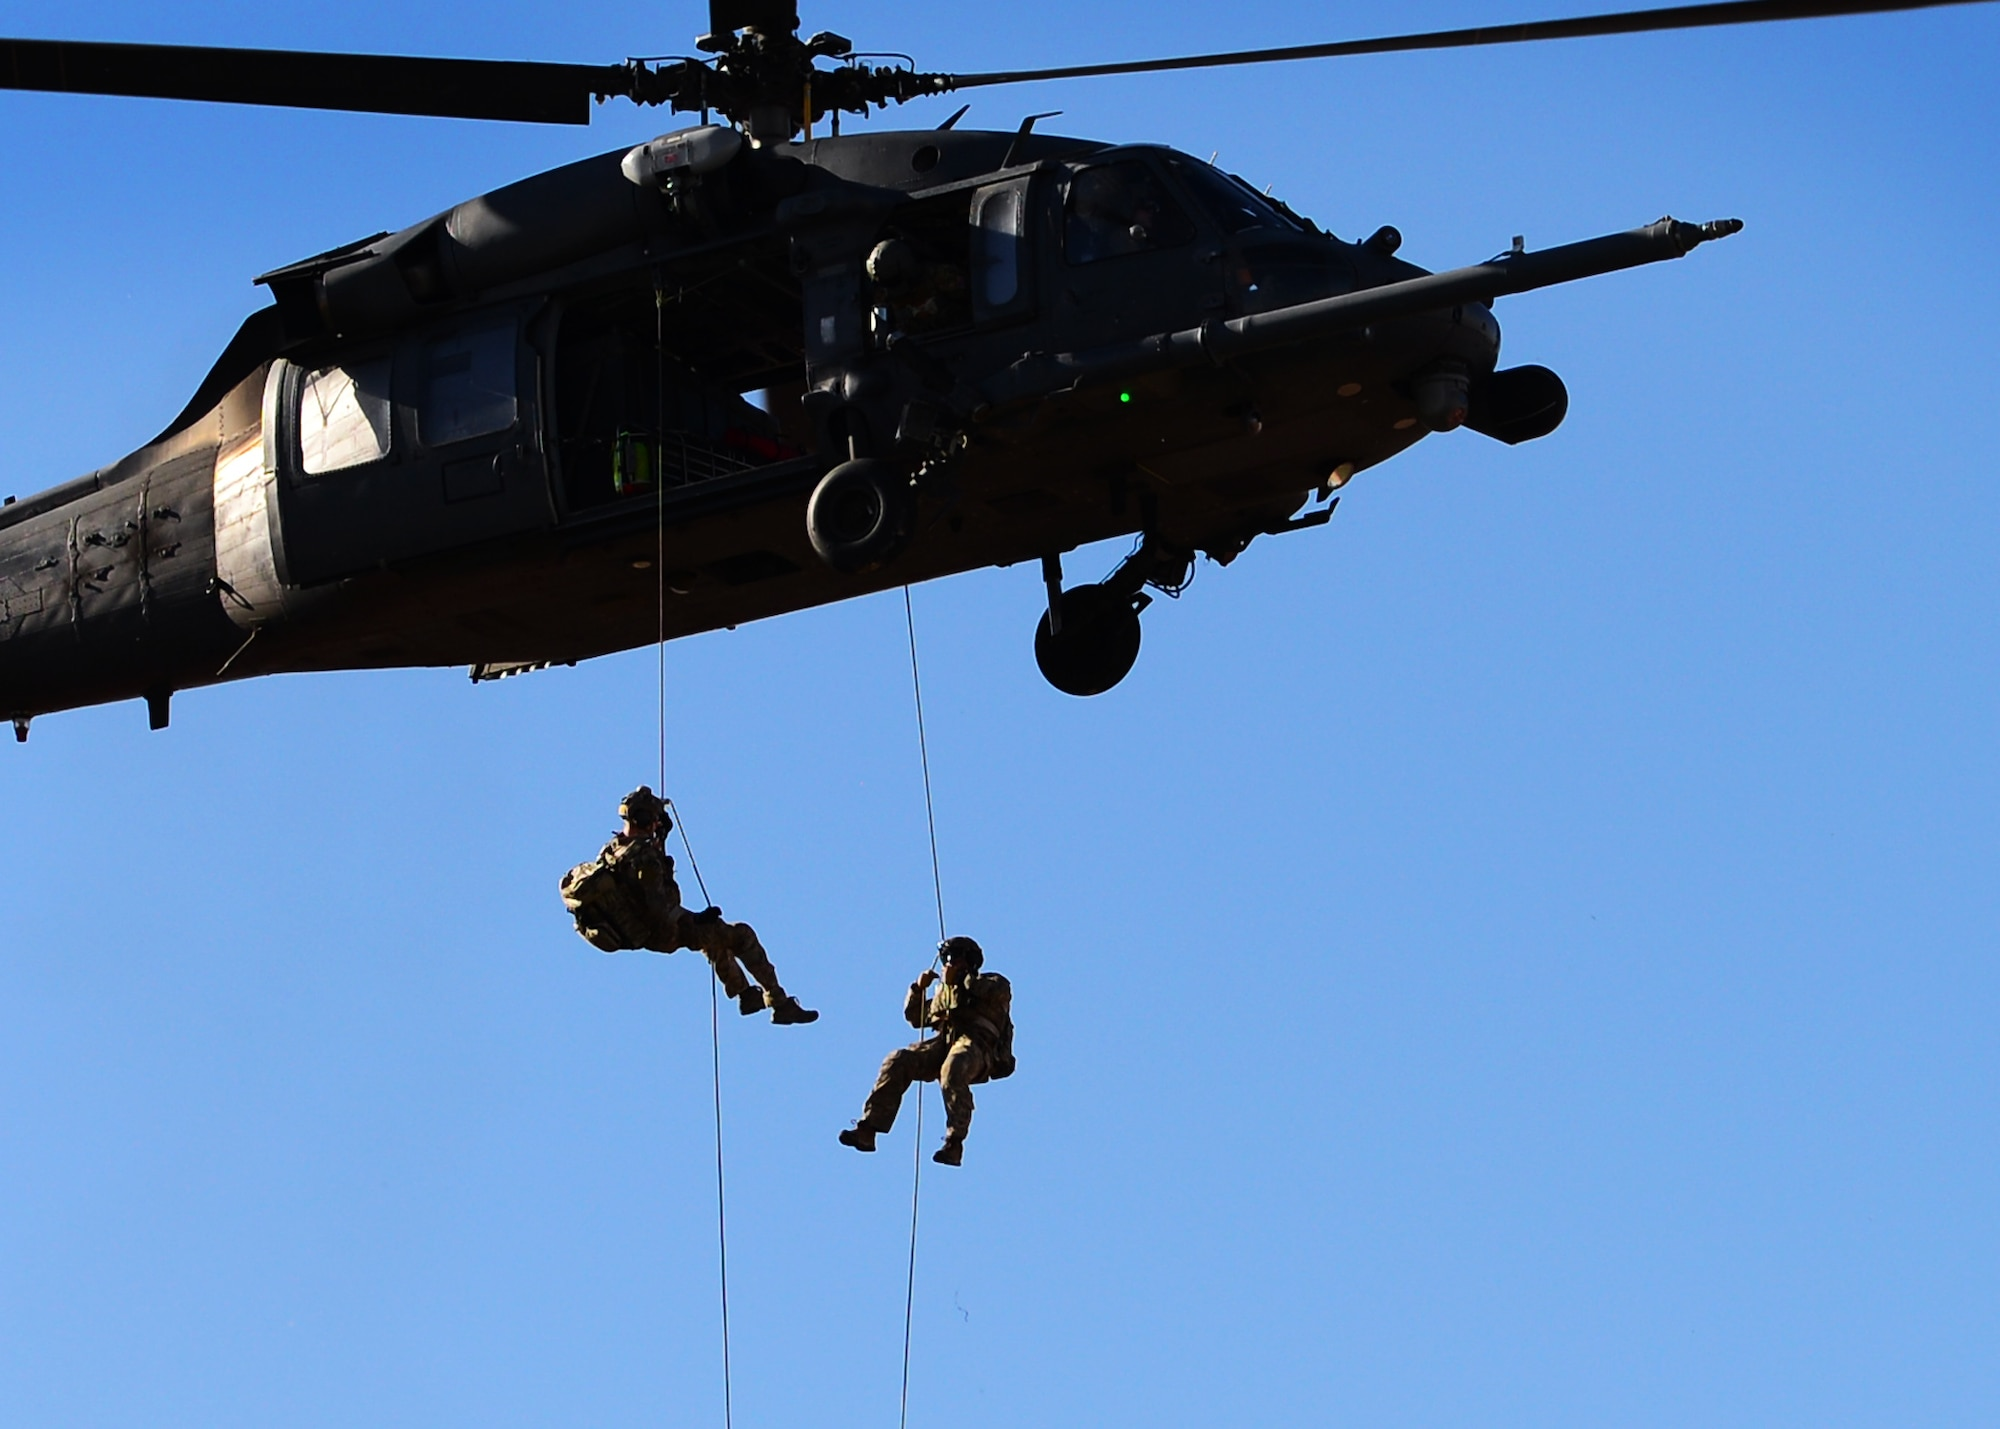 Two U.S. Air Force pararescuemen repel down onto the Warrior Fitness Center field during the 2017 Air Force Warrior Game Trials opening ceremony Feb. 24, 2017 at Nellis Air Force Base, Nev. The pair officially presented Maj. Gen. Peggy Poore, Air Force Personnel Center commander, with the Care Beyond Duty flag. (U.S. Air Force photo by Senior Airman Chip Pons)